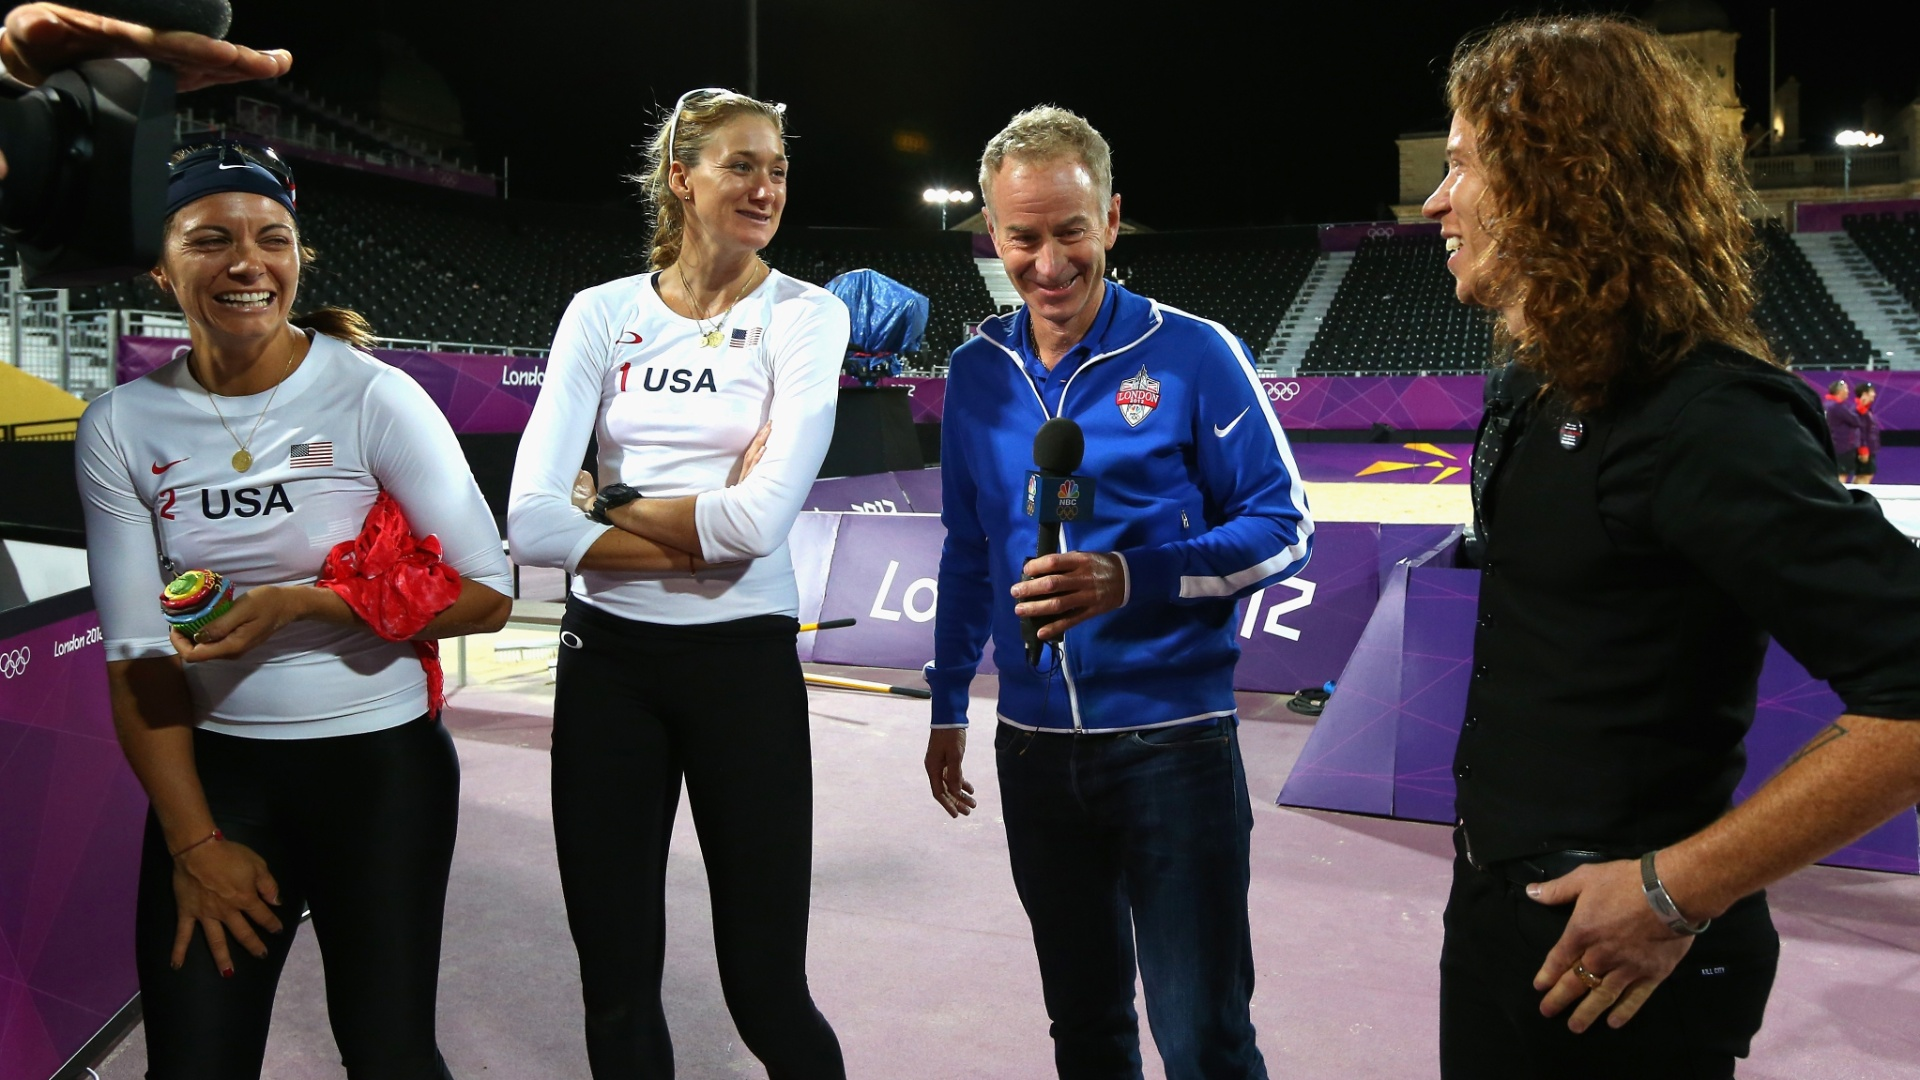 John McEnroe e Shaun White entrevistam a dupla do vôlei de praia Kerri Walsh e Misty May-Treanor